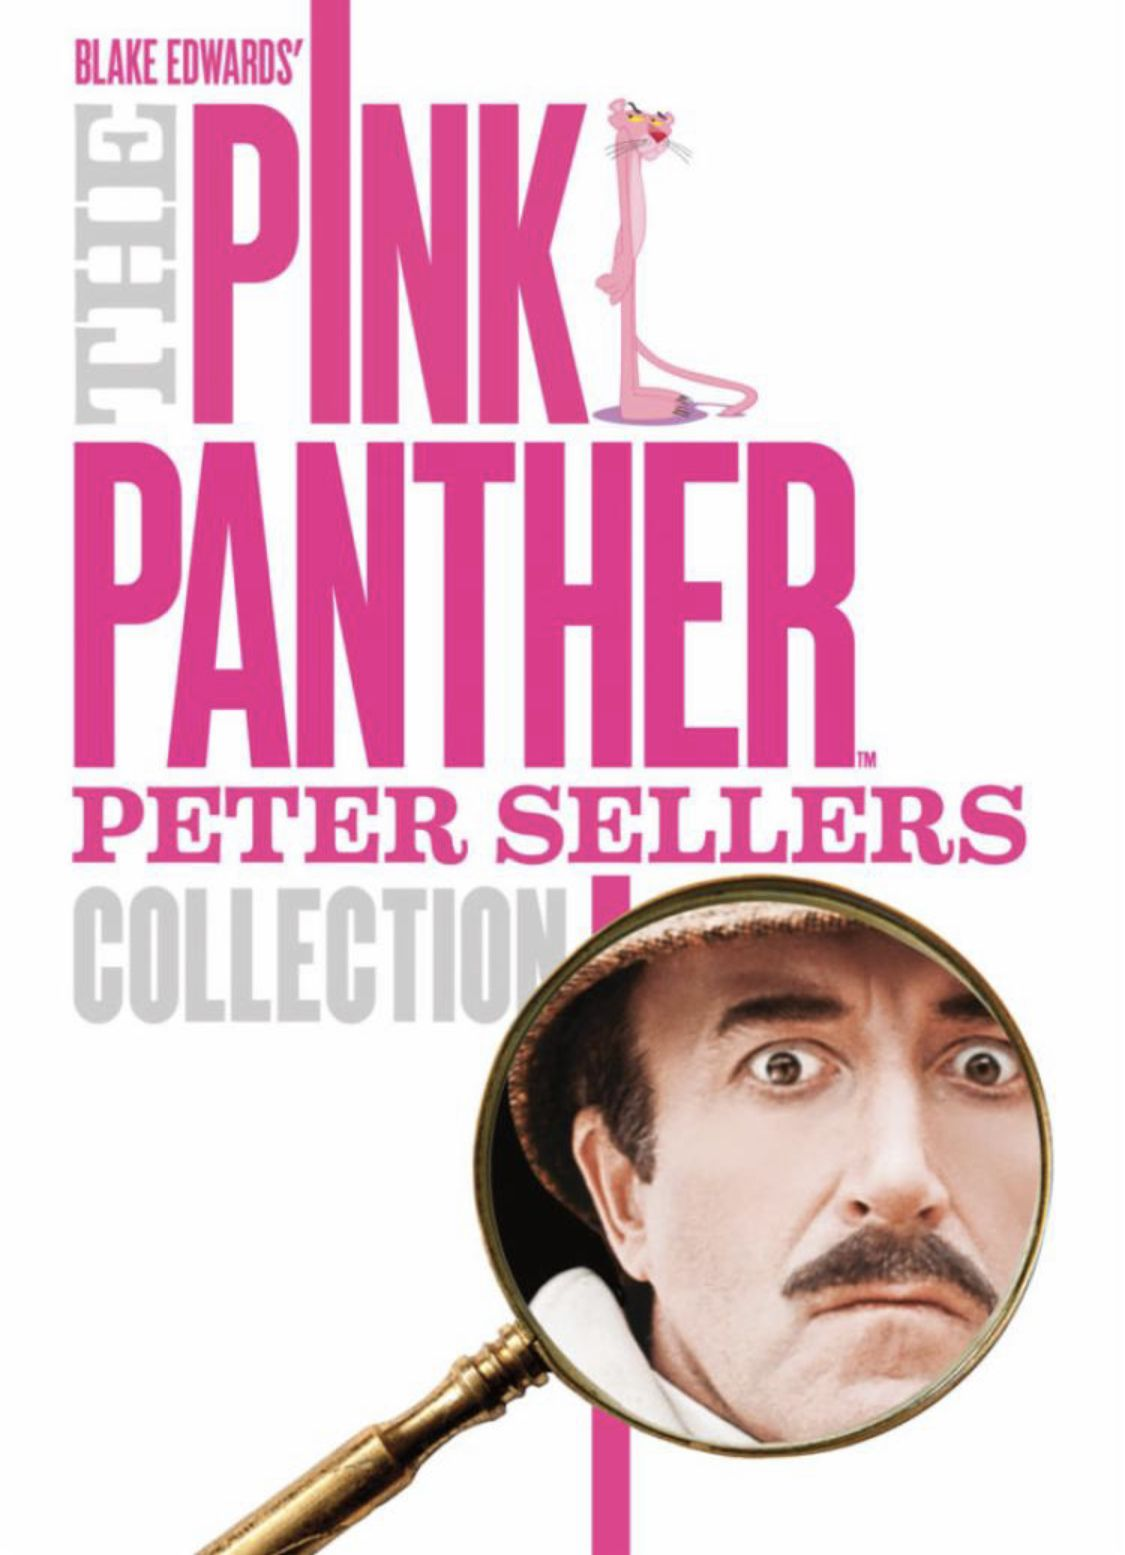 The Pink Panther Collection: Peter Sellers (Digital HD)